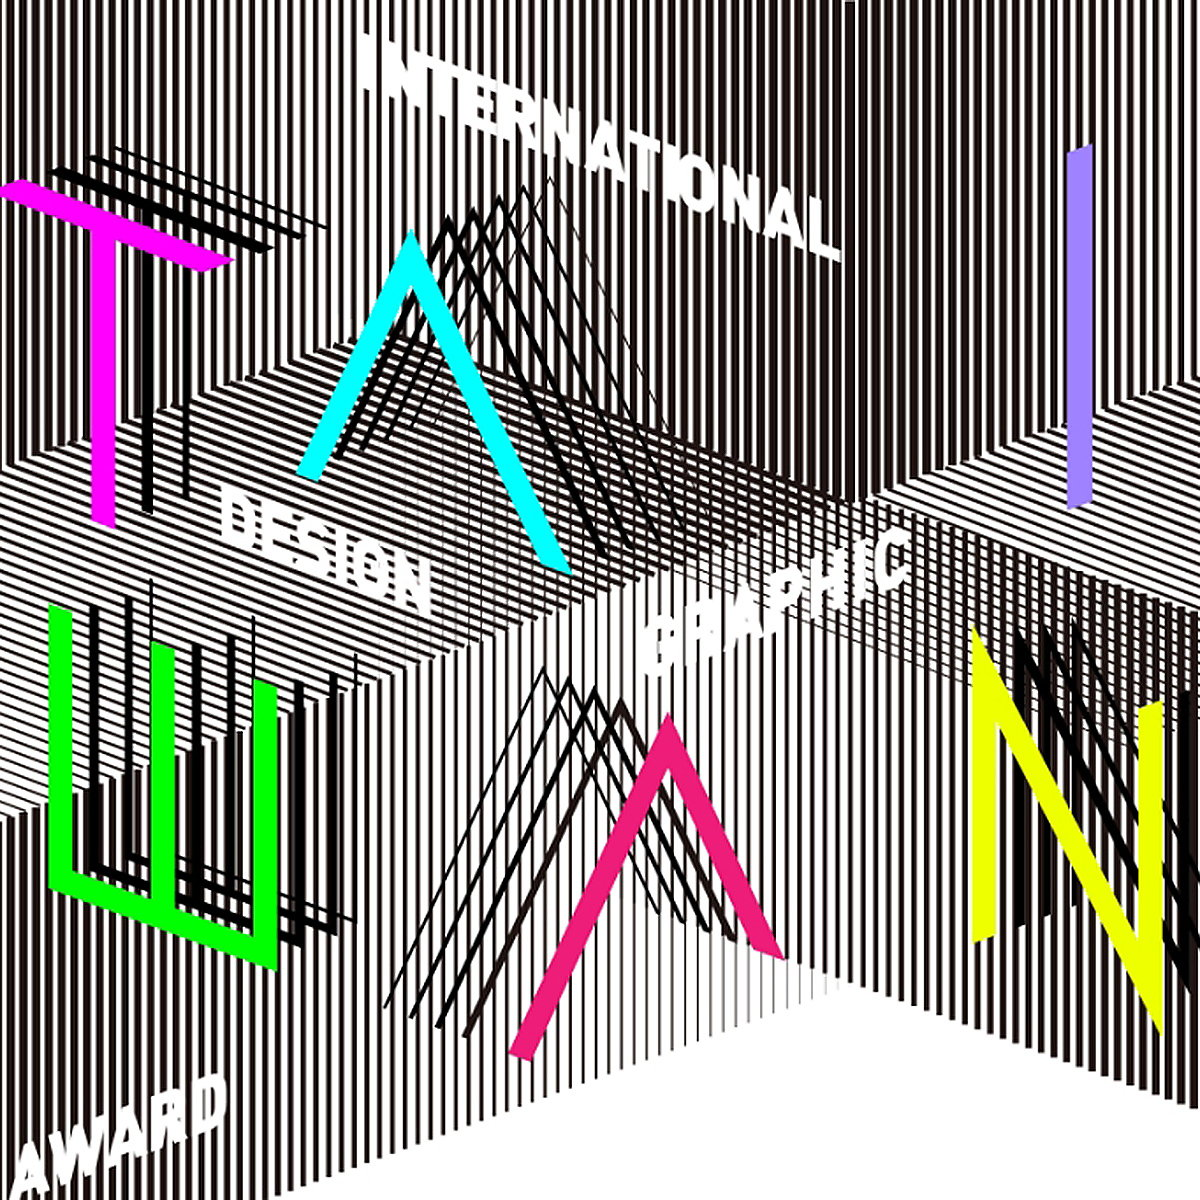 Taiwan International Graphic Design Award 2019